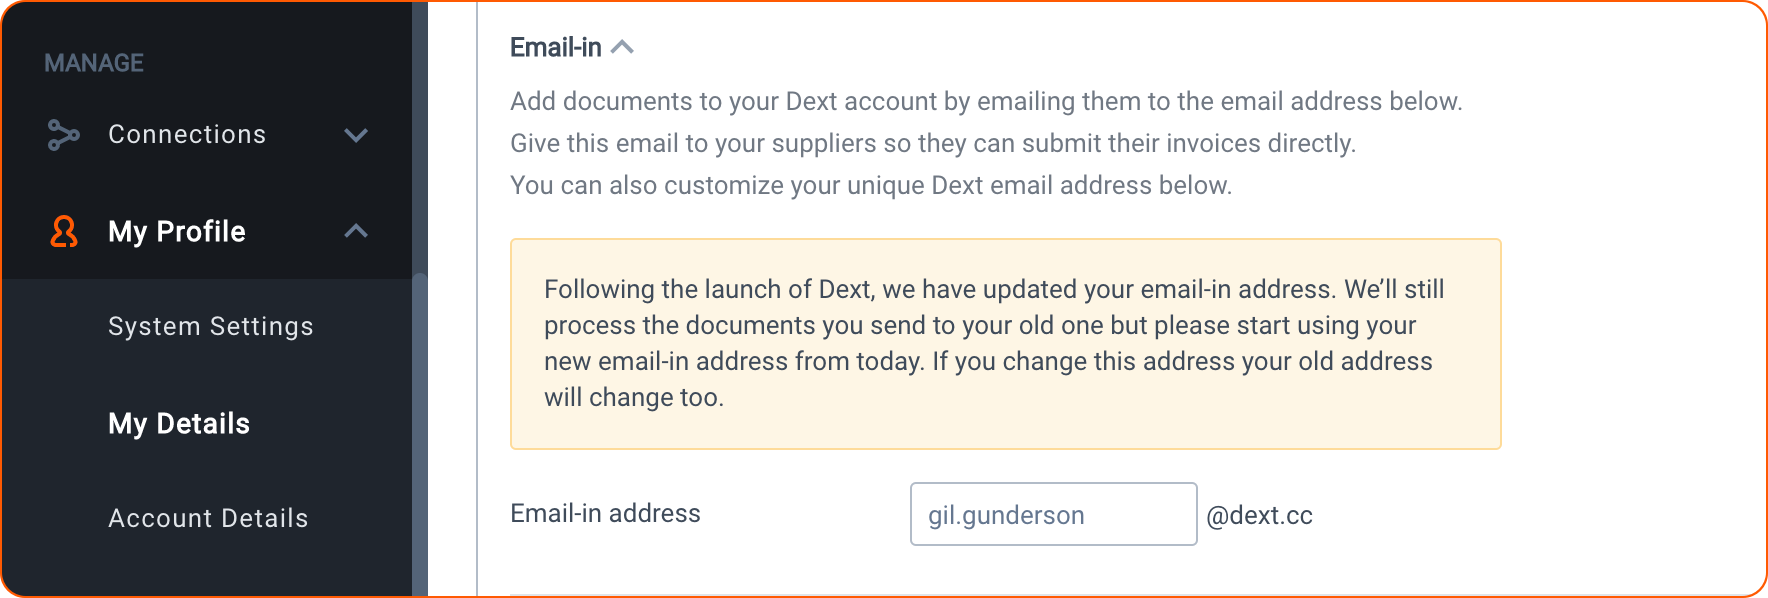 email-in address for Dext